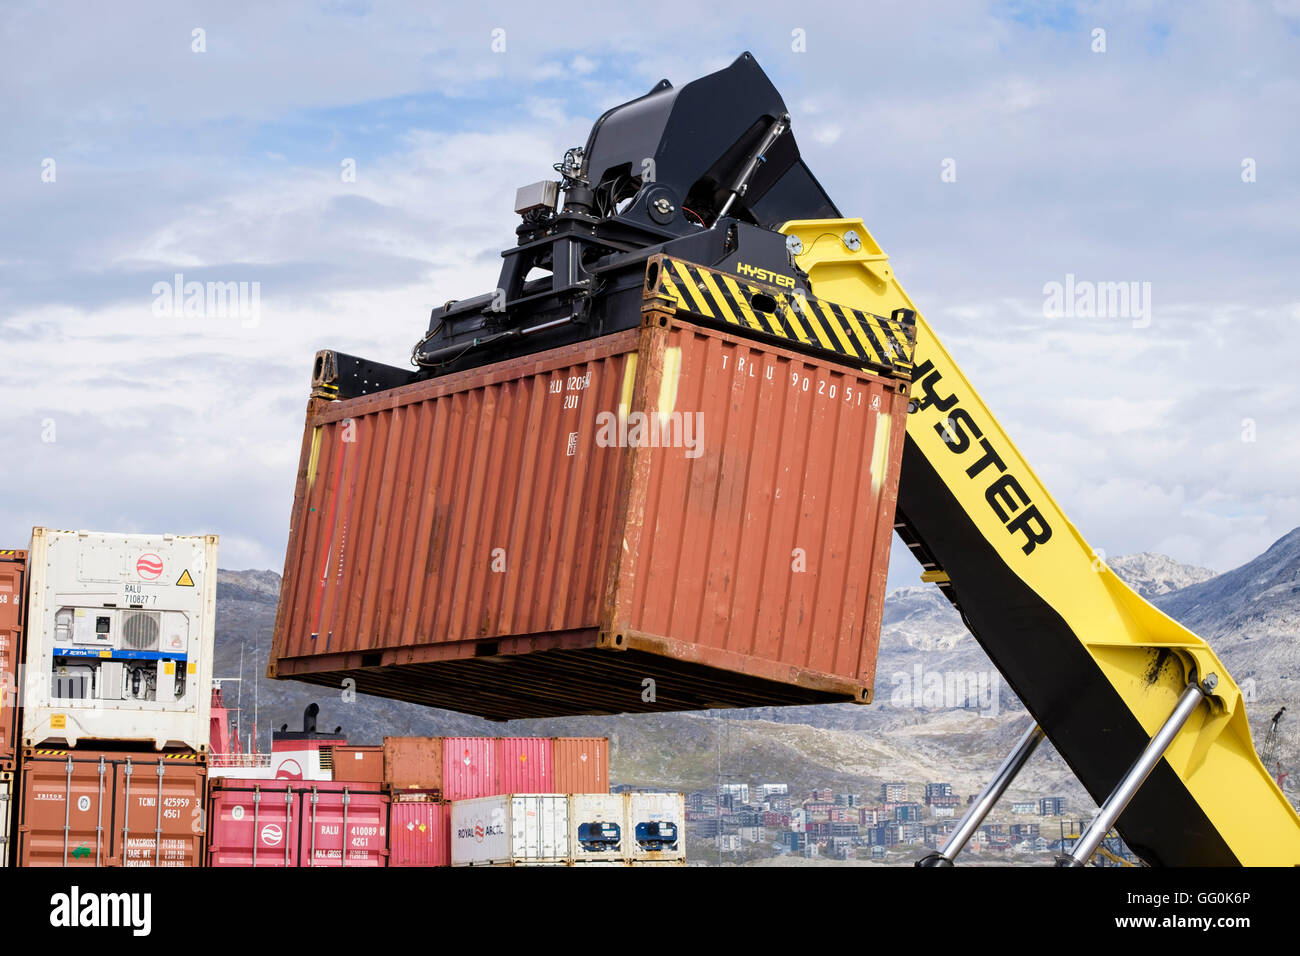 Hydraulic Hyster forklift truck lifting freight shipping containers in port. Atlantic Harbour, Nuuk Sermersooq West - Stock Image